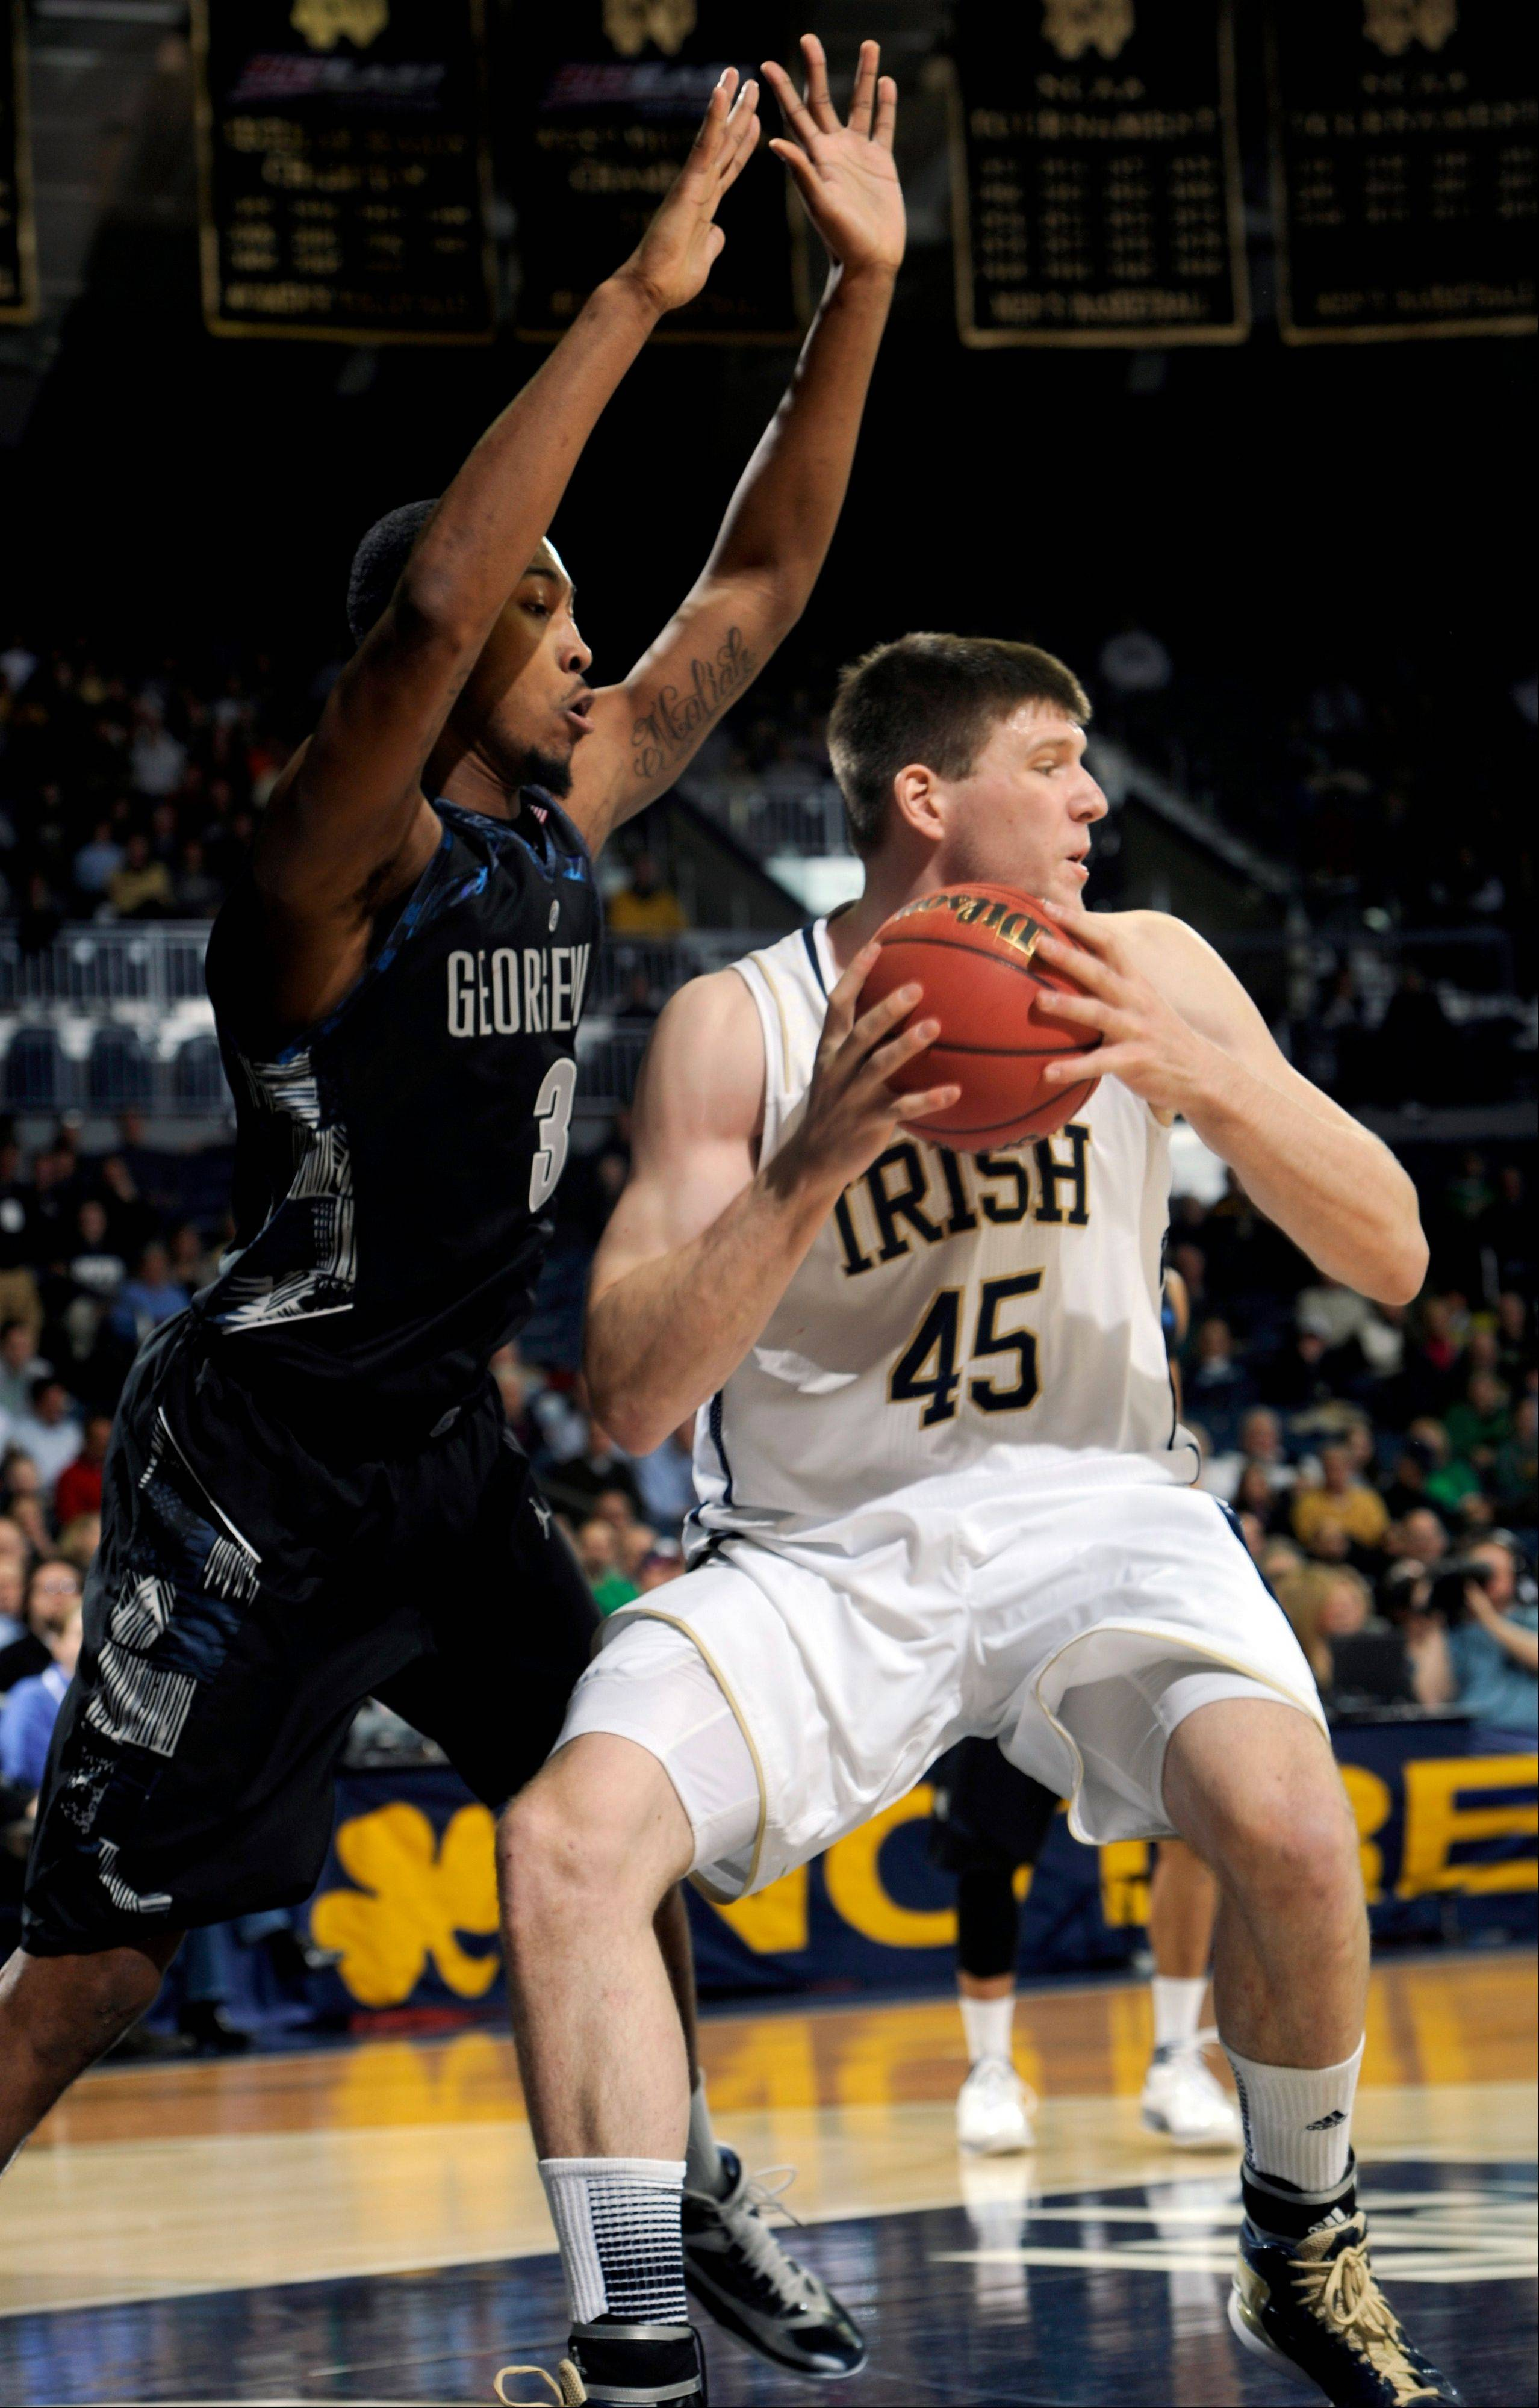 Notre Dame forward Jack Cooley, right, tries to drive the lane as Georgetown forward Mikael Hopkins defends during the first half of an NCAA college basketball game, Monday Jan. 21, 2013, in South Bend, Ind.